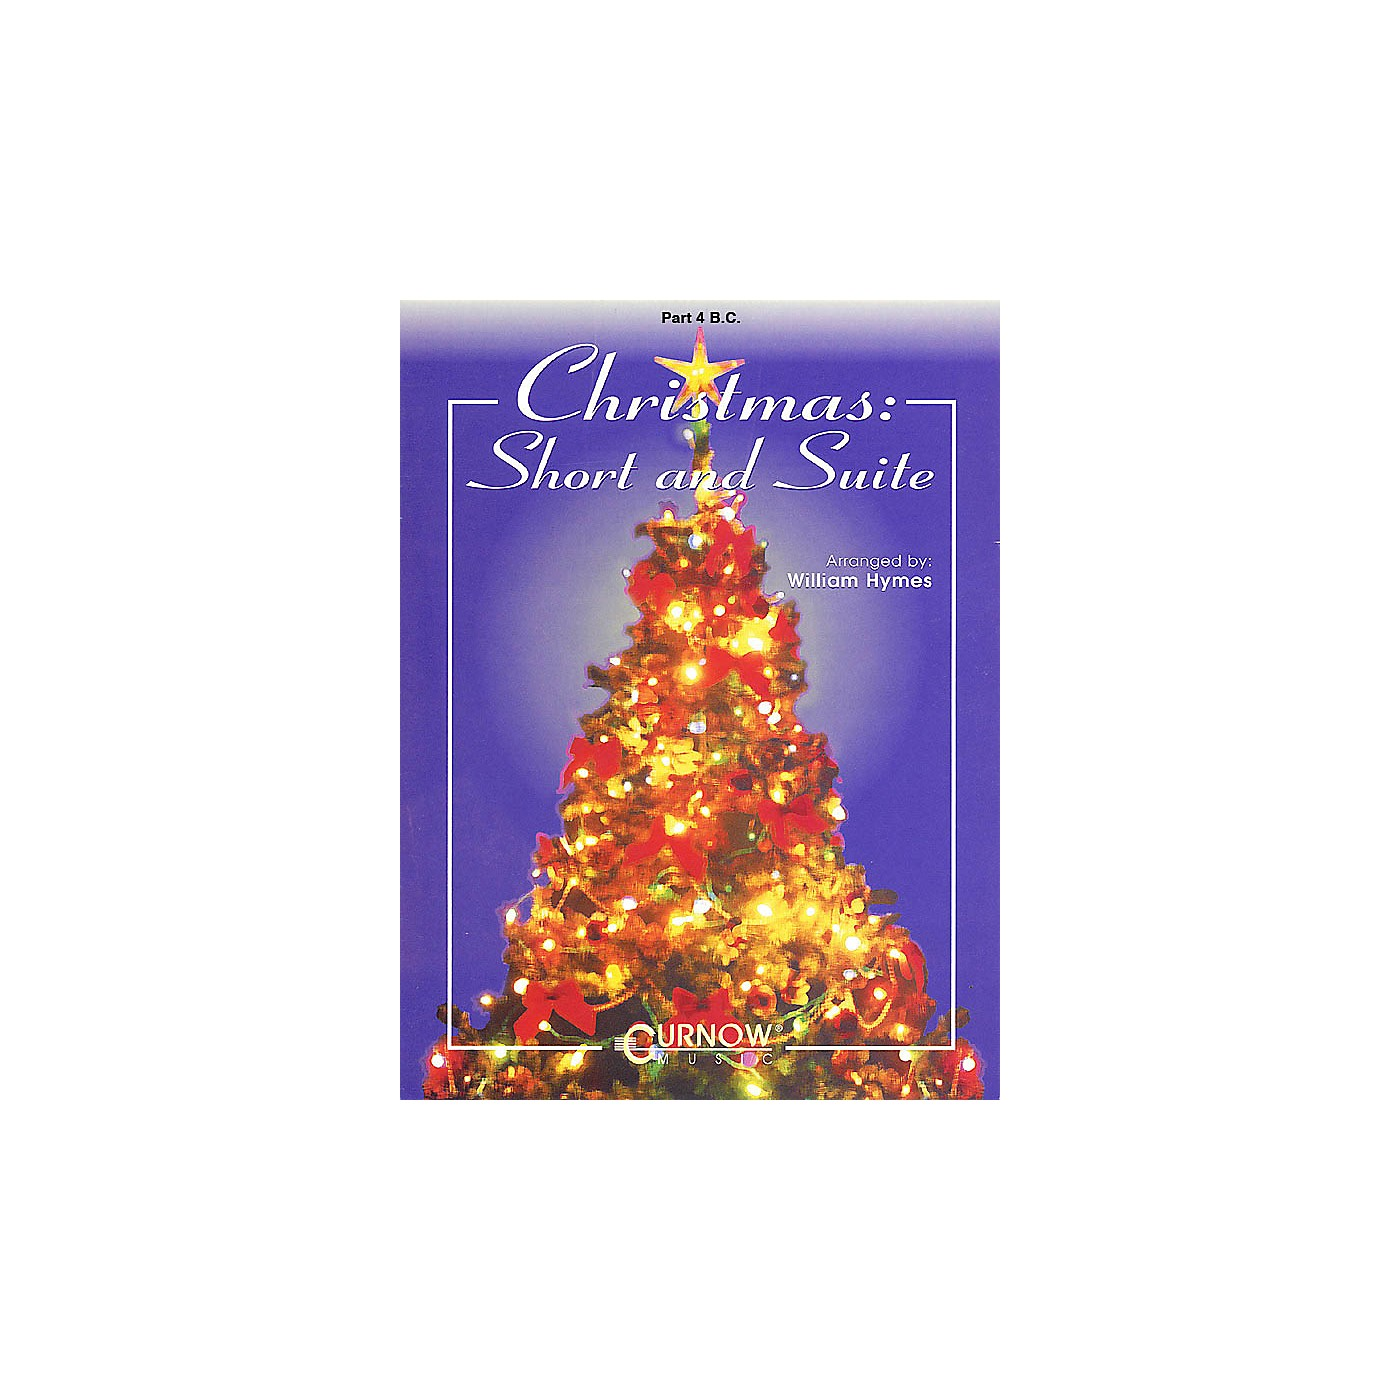 Curnow Music Christmas: Short and Suite (Part 4 - Bass Clef) Concert Band Level 2-4 Arranged by William Himes thumbnail